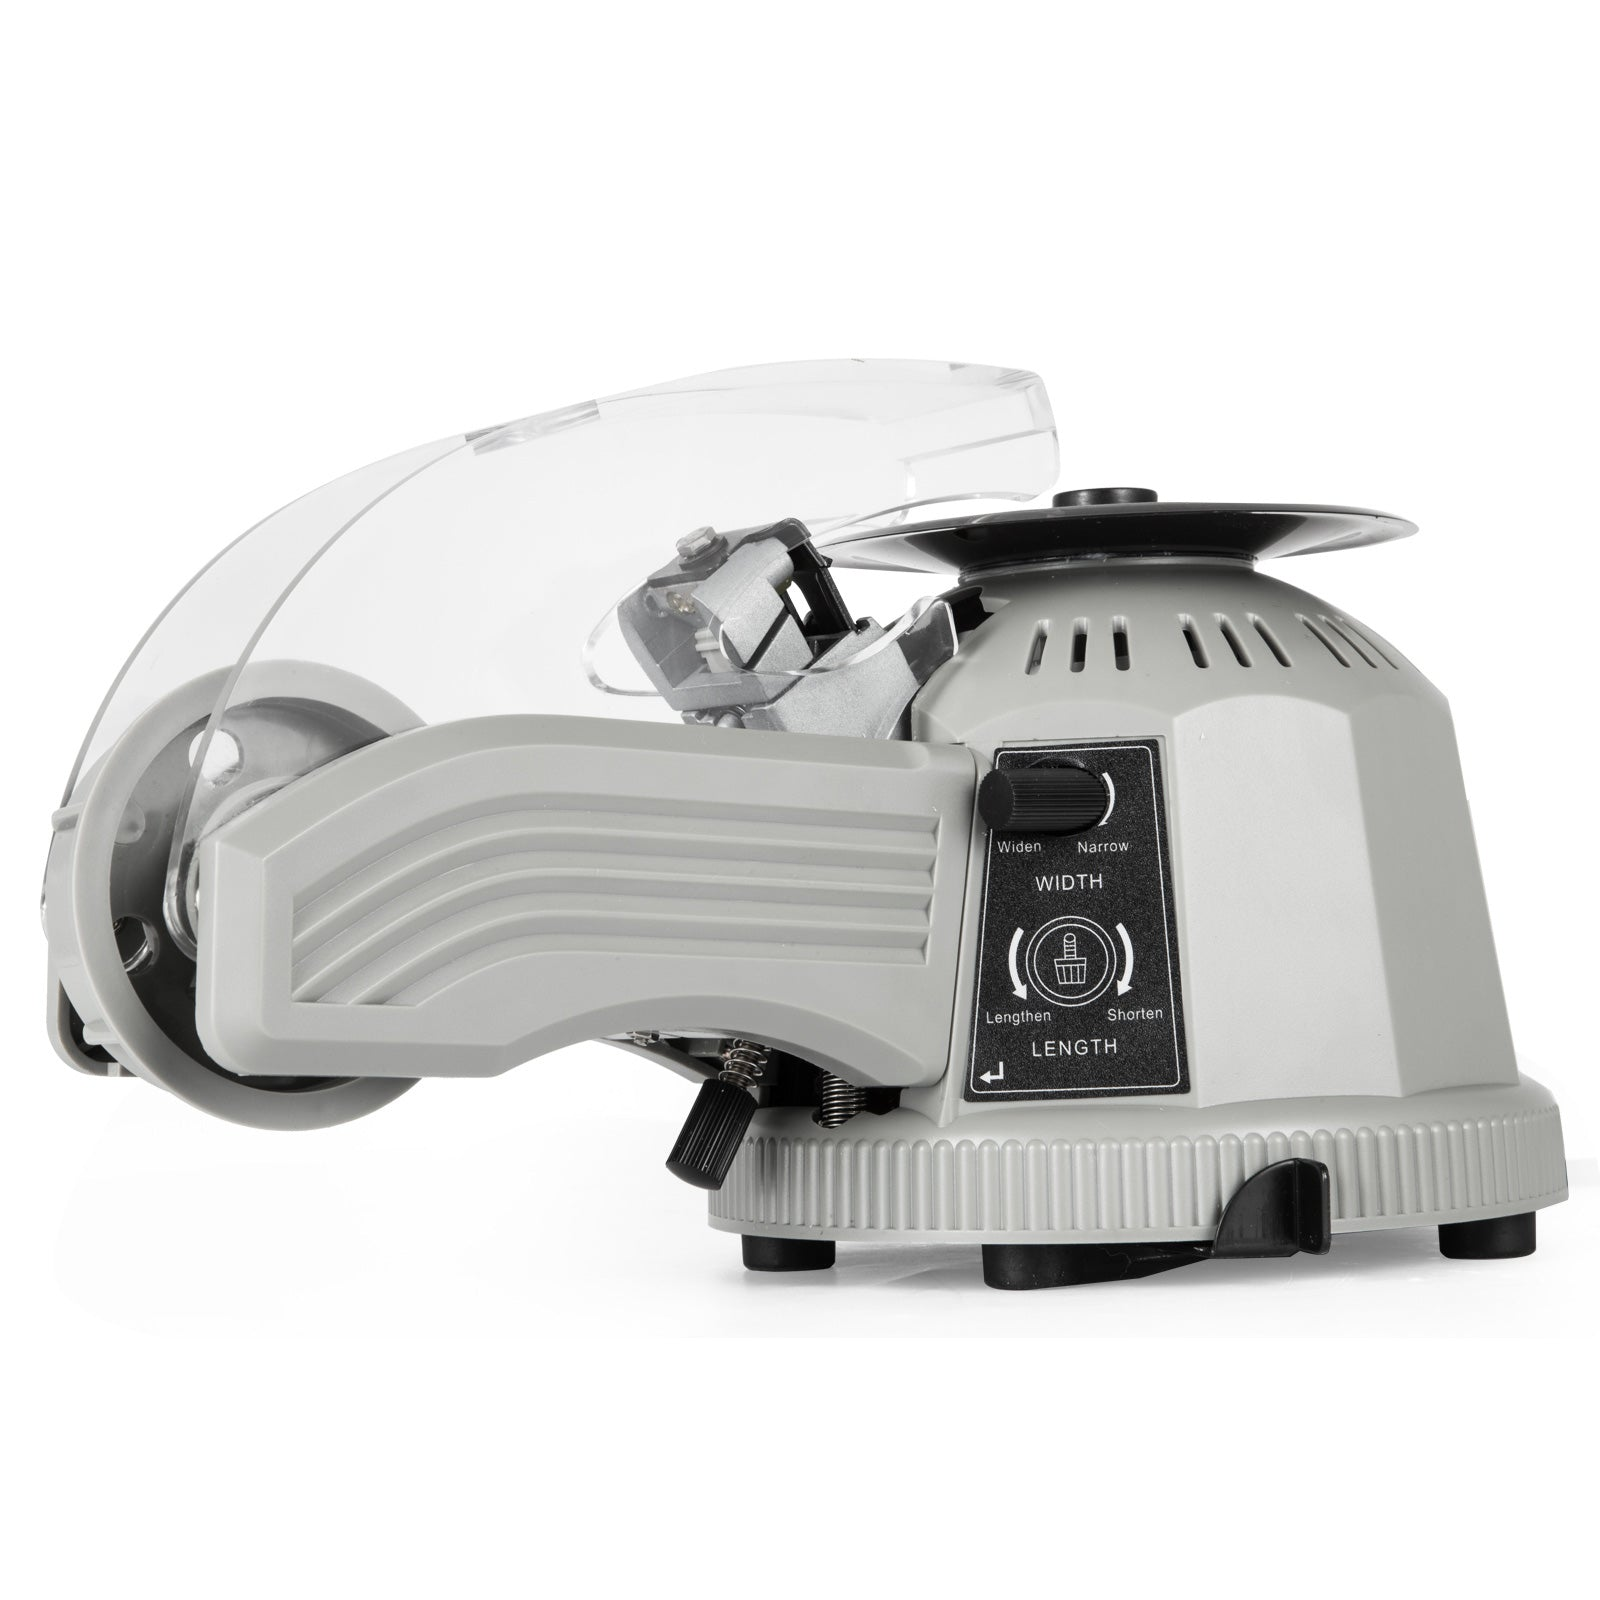 Zcut-2 Automatic Bandspender Tape Cutter Machine 160w Tape Dispenser Cutter